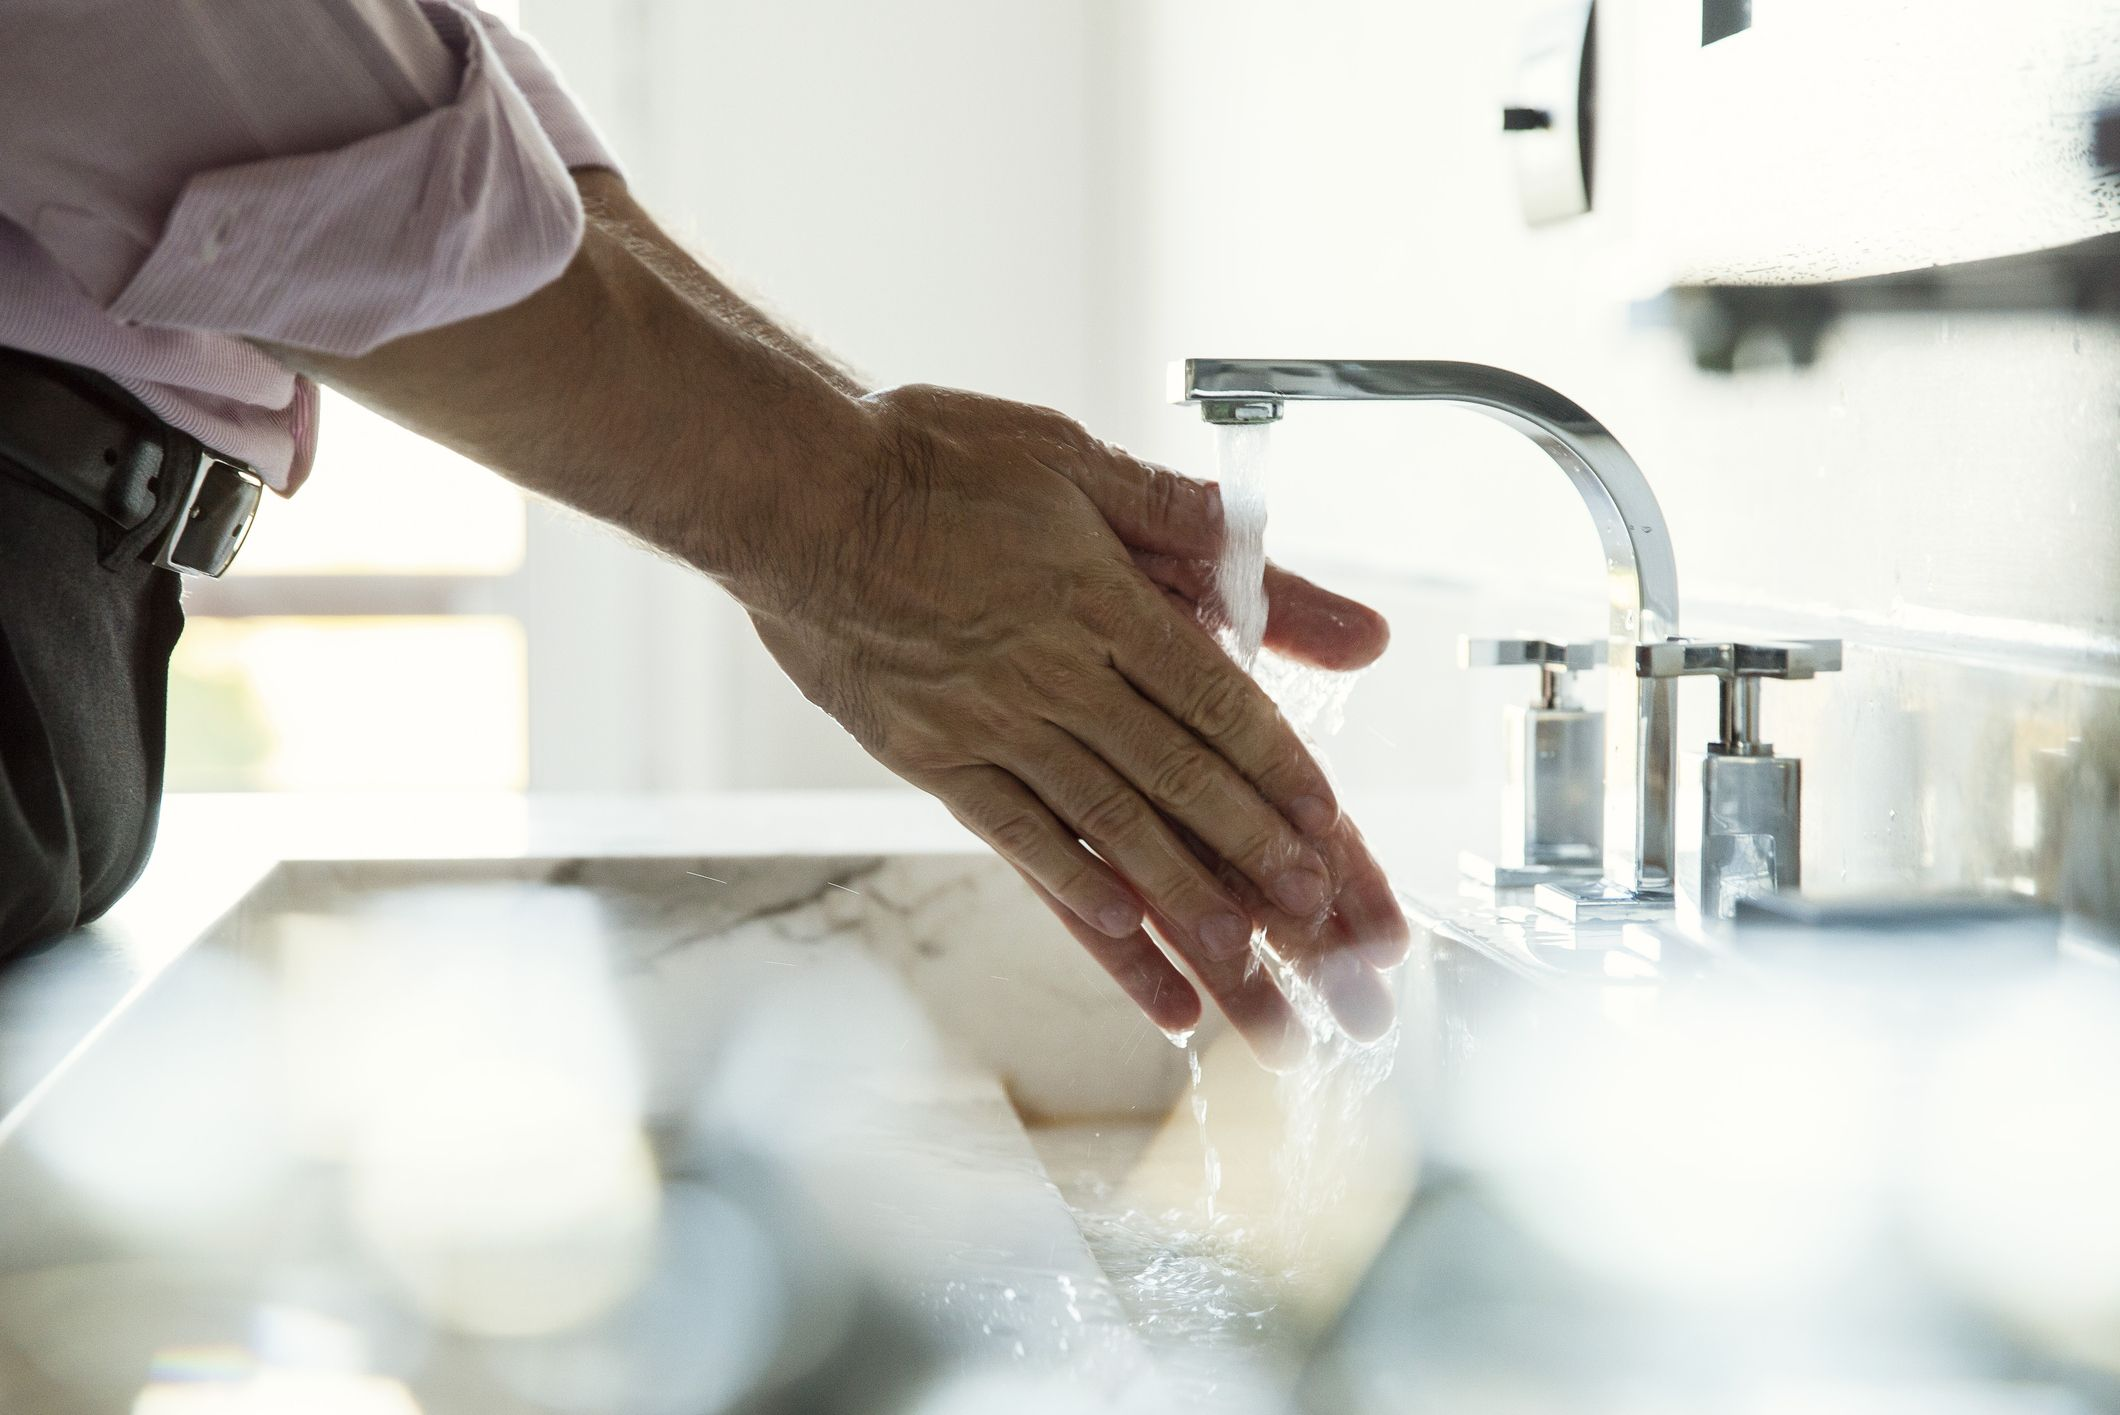 Here's How to Properly Wash Your Hands So You Don't Get the Flu